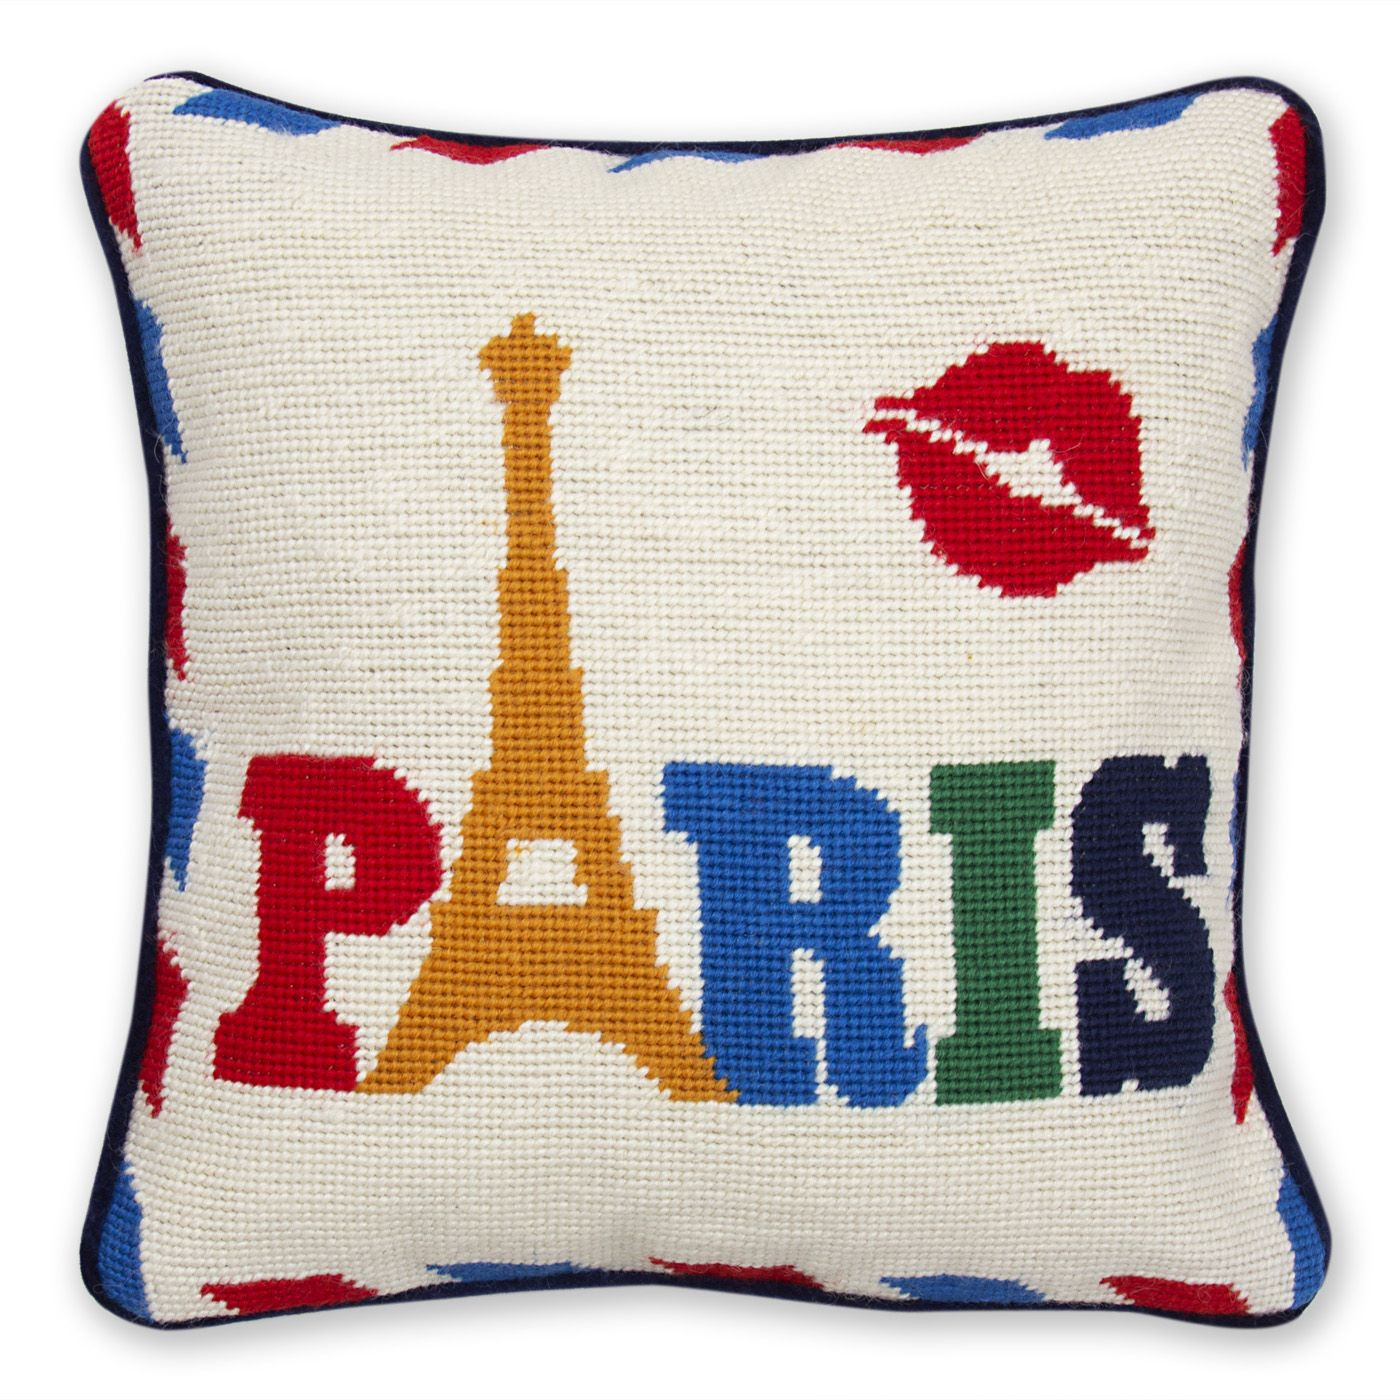 can pillows nyc decorative buy to most the cushion pillow where throw kupon gallery of stunning blanket you cheap